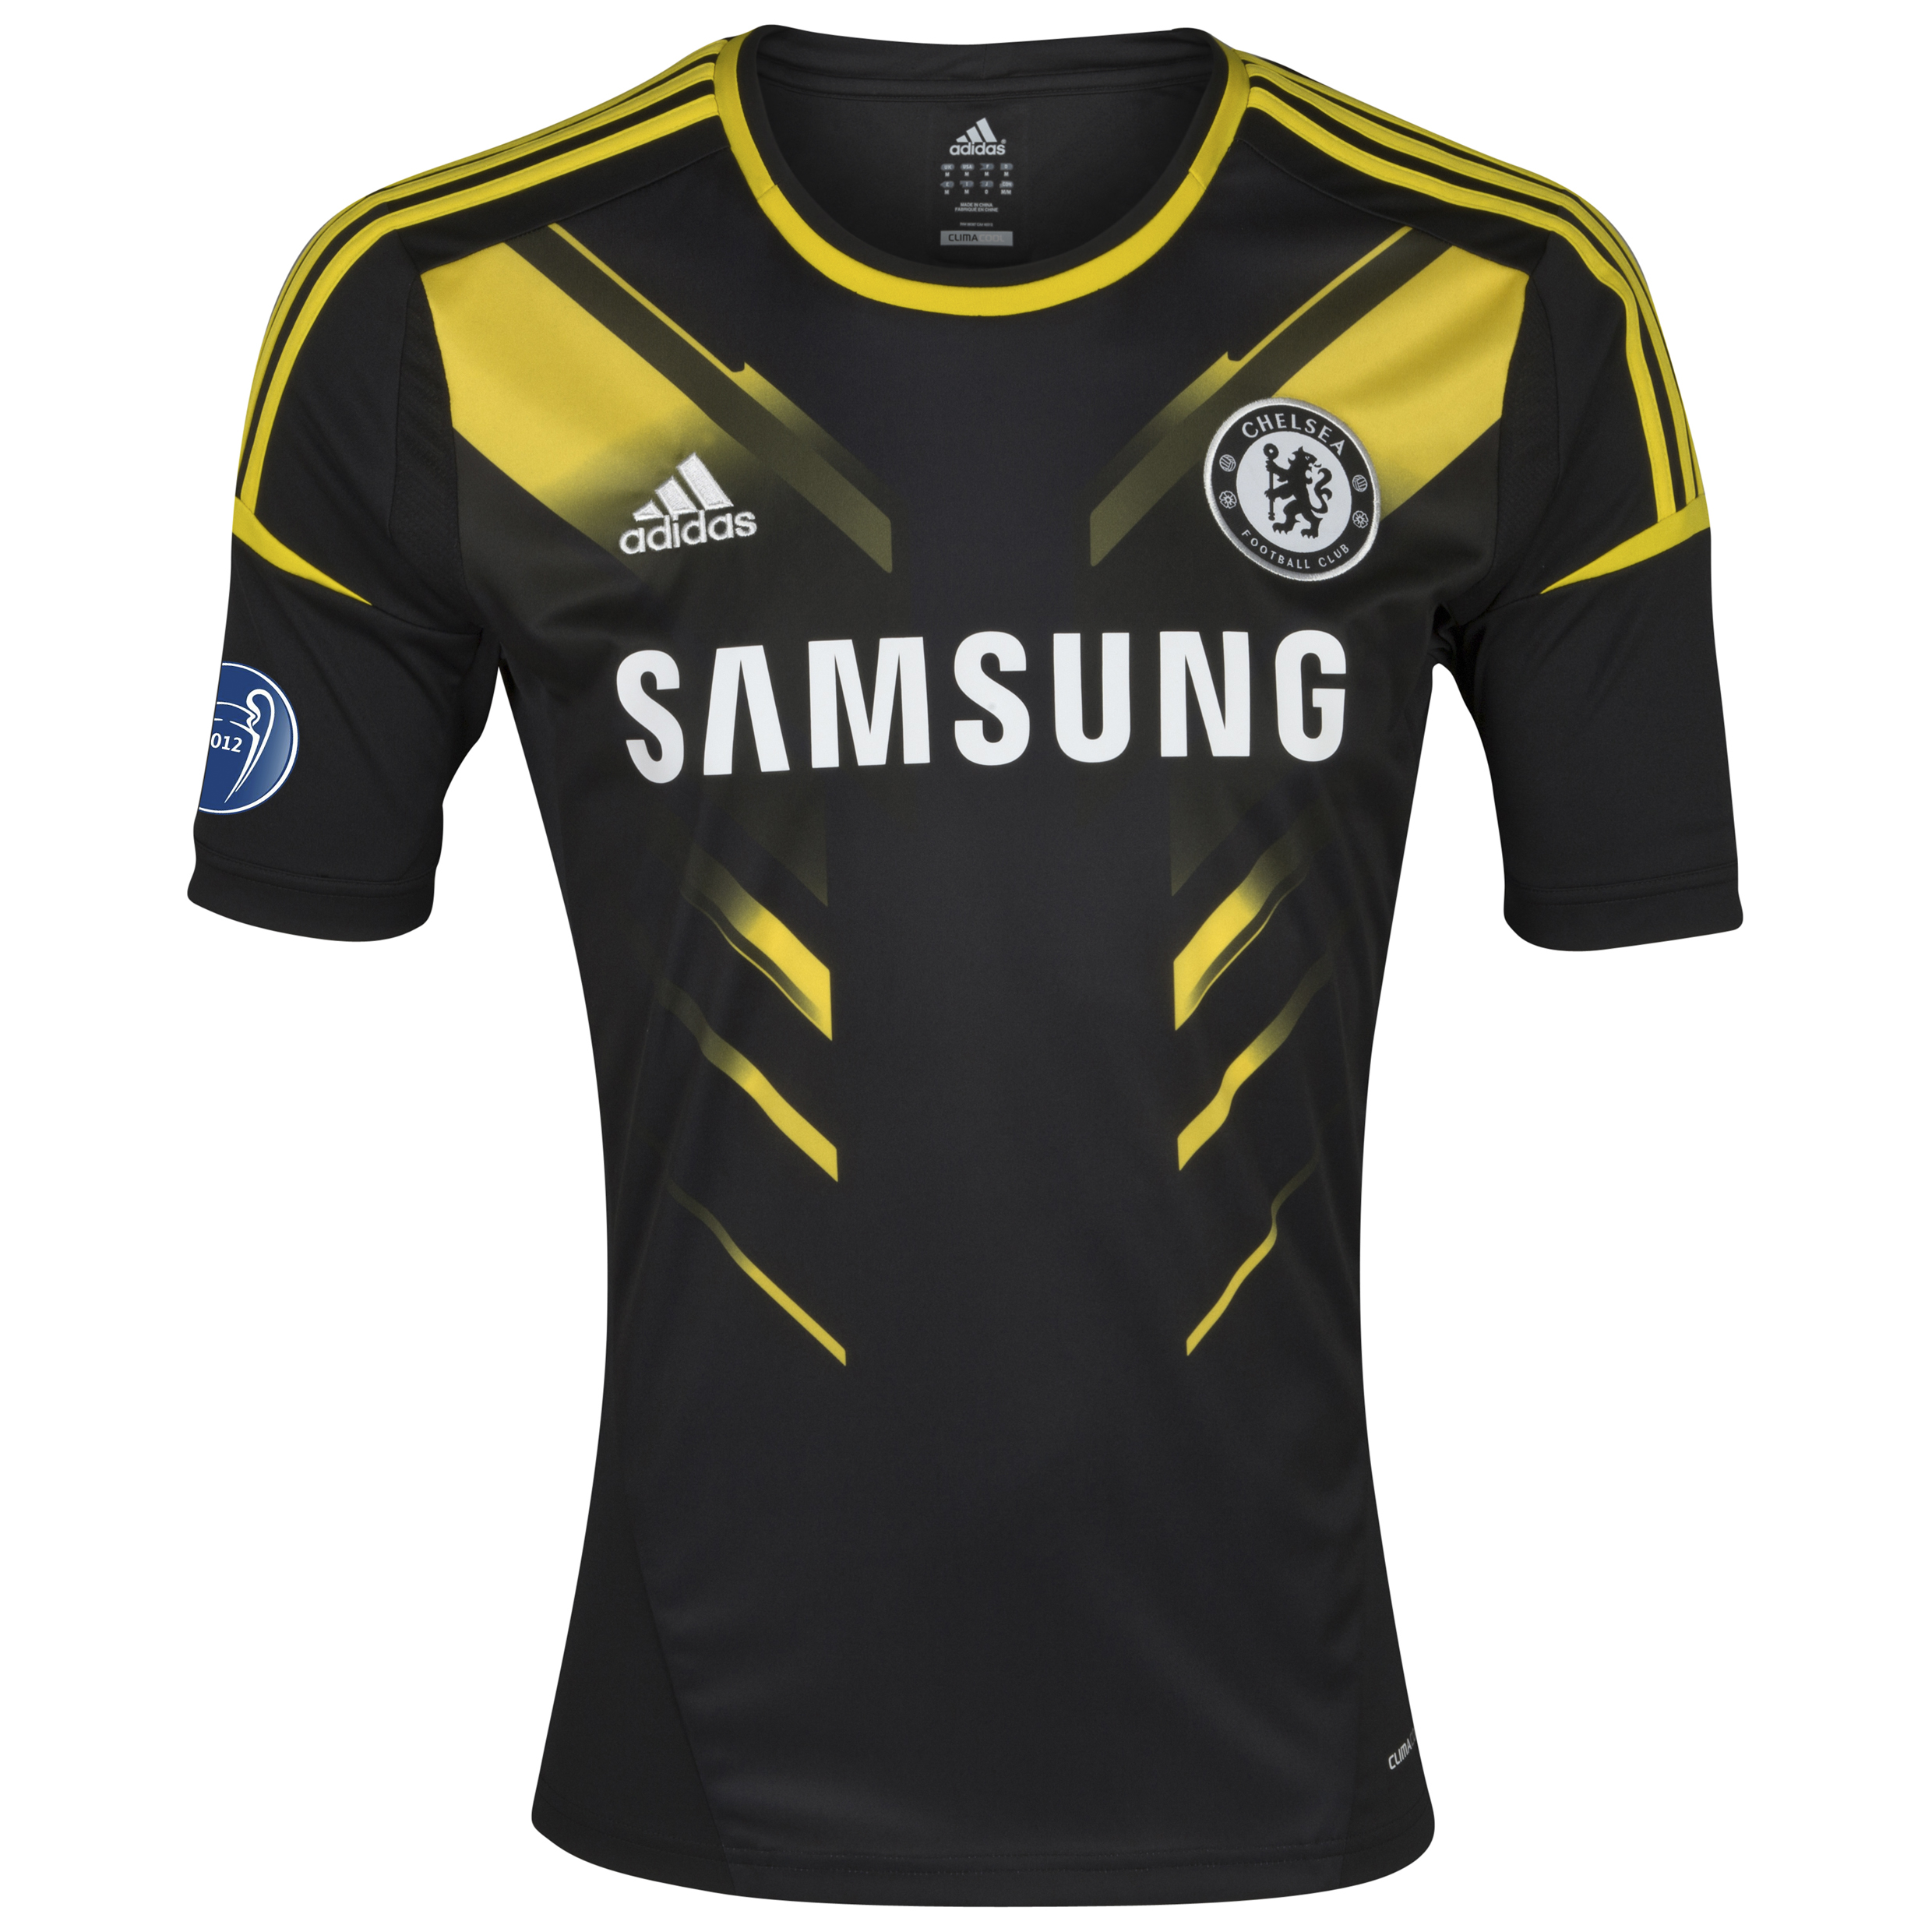 Chelsea UEFA Champions League Third Shirt 2012/13 with Winners Badge